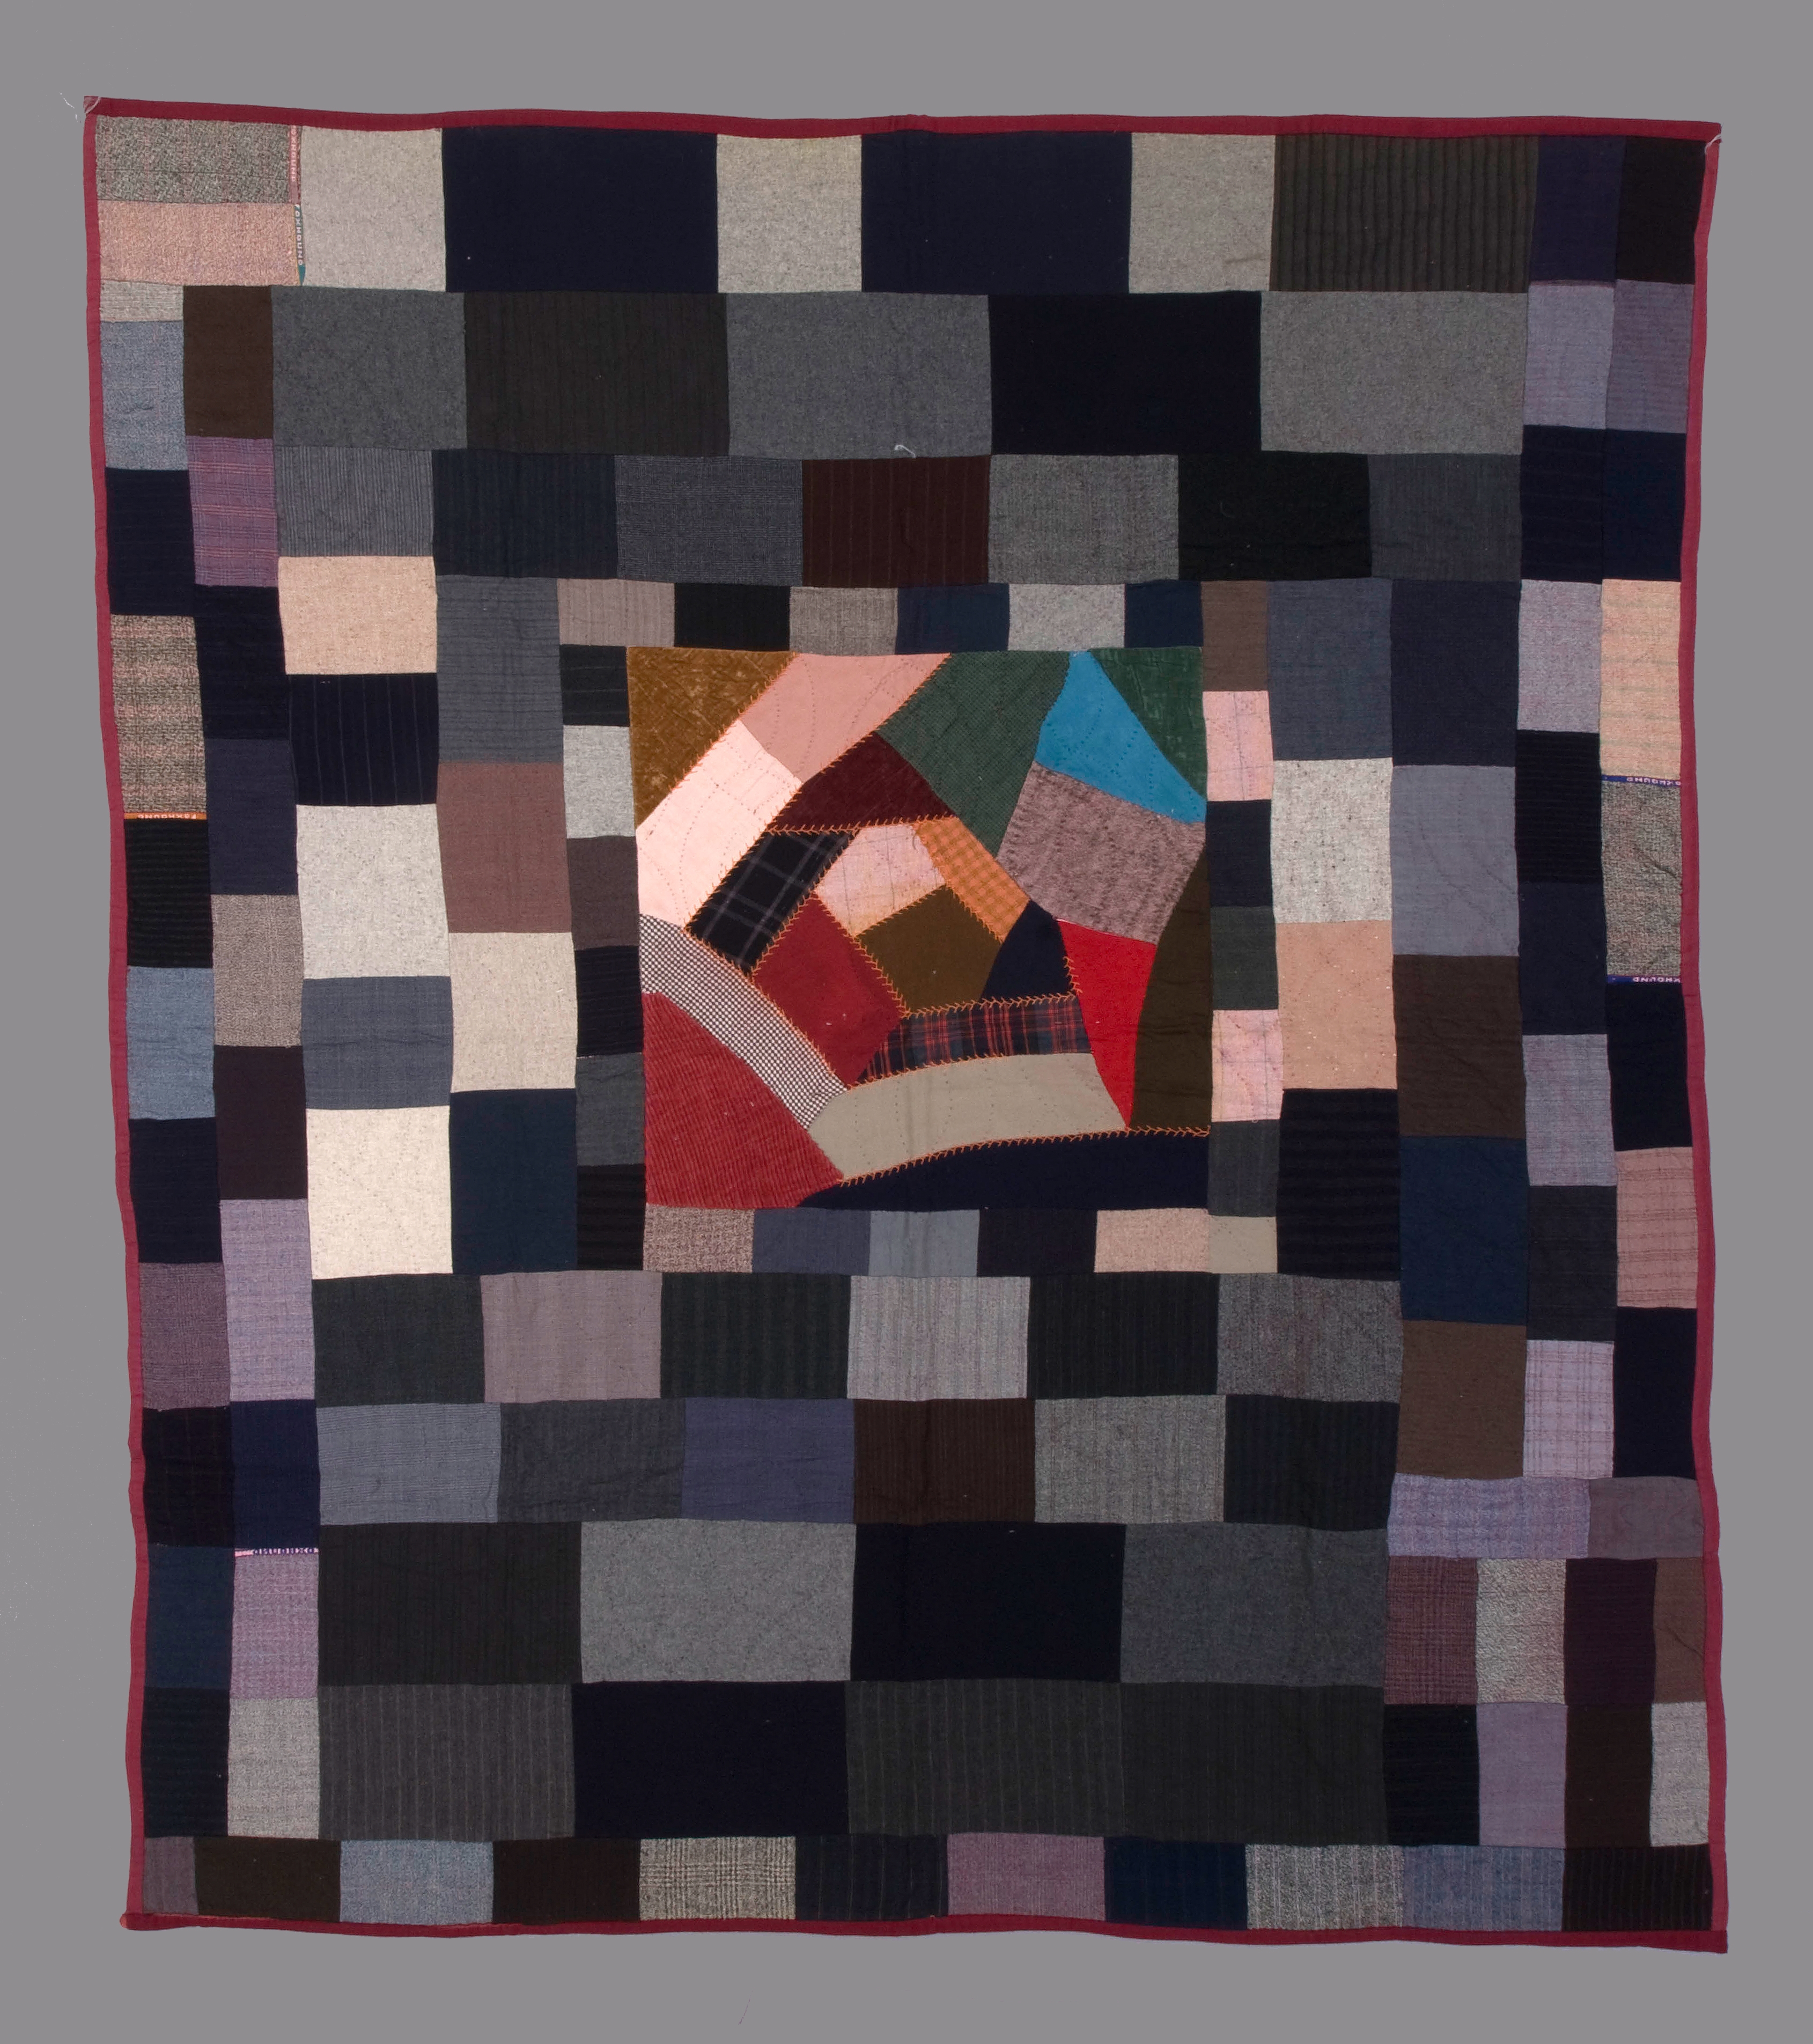 LVB.193pm - Piecing It Together: Knowledge Creation in the Rosenberg Quilt Collection - DAYTIME LECTURE